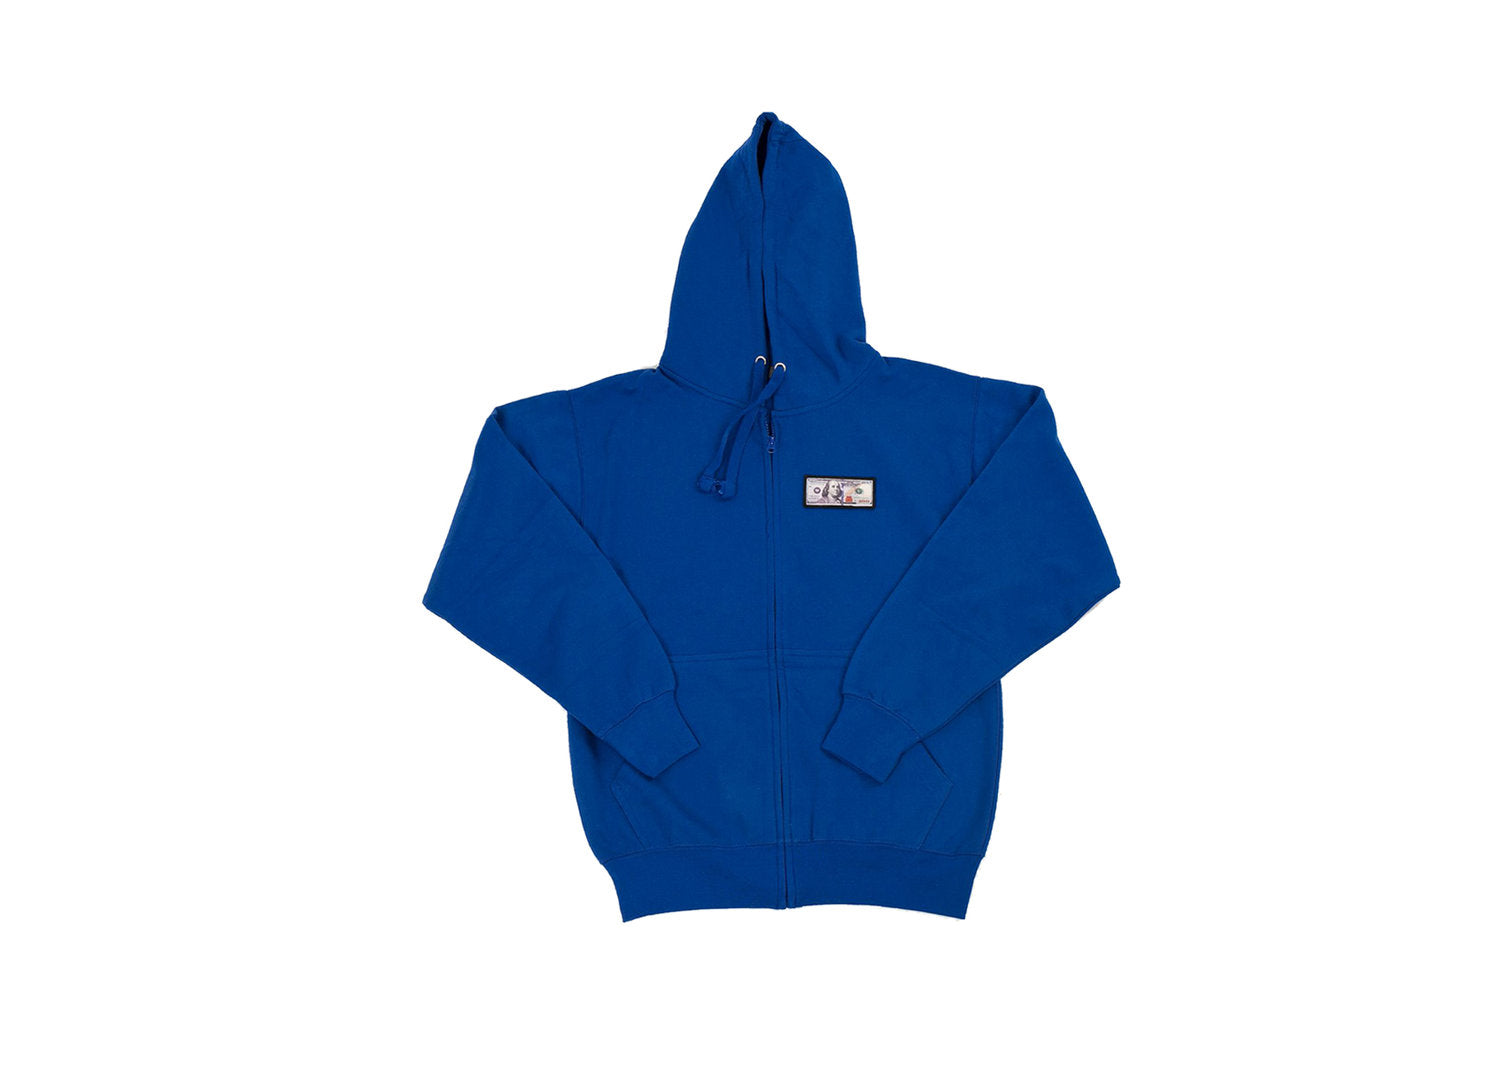 Royal Blue 'Blue Hundreds' Zip Up Hoodie by Twenty1Rich with a $100 logo